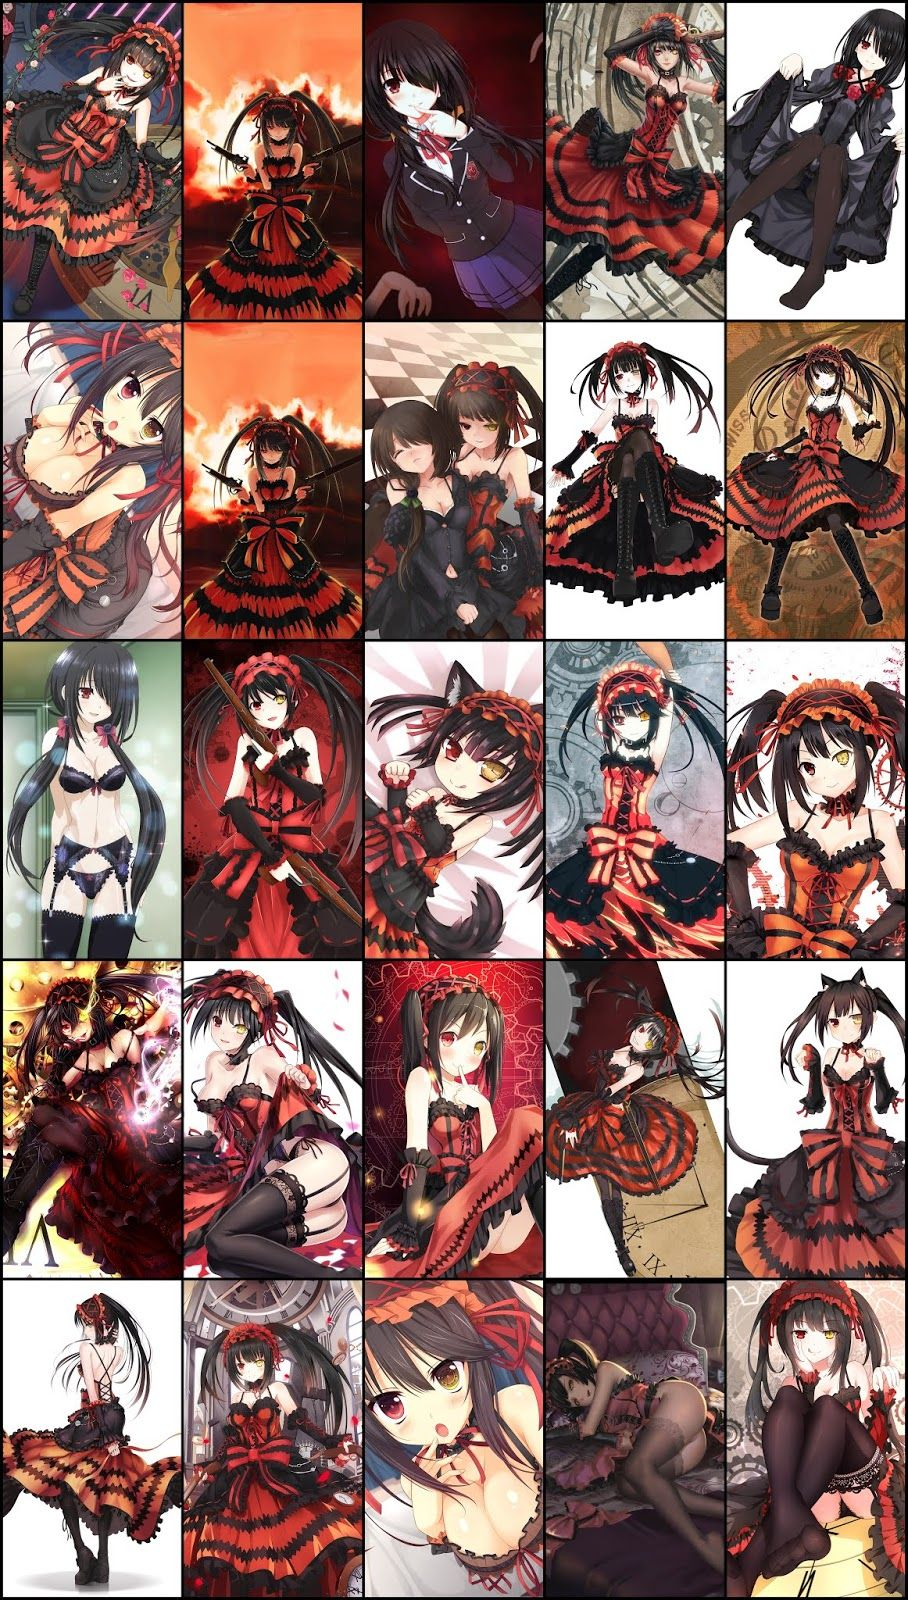 Date A Live Kurumi Tokisaki Wallpaper Pack For Mobile Phone Part 05 Seni Anime Ilustrator Gambar Manga